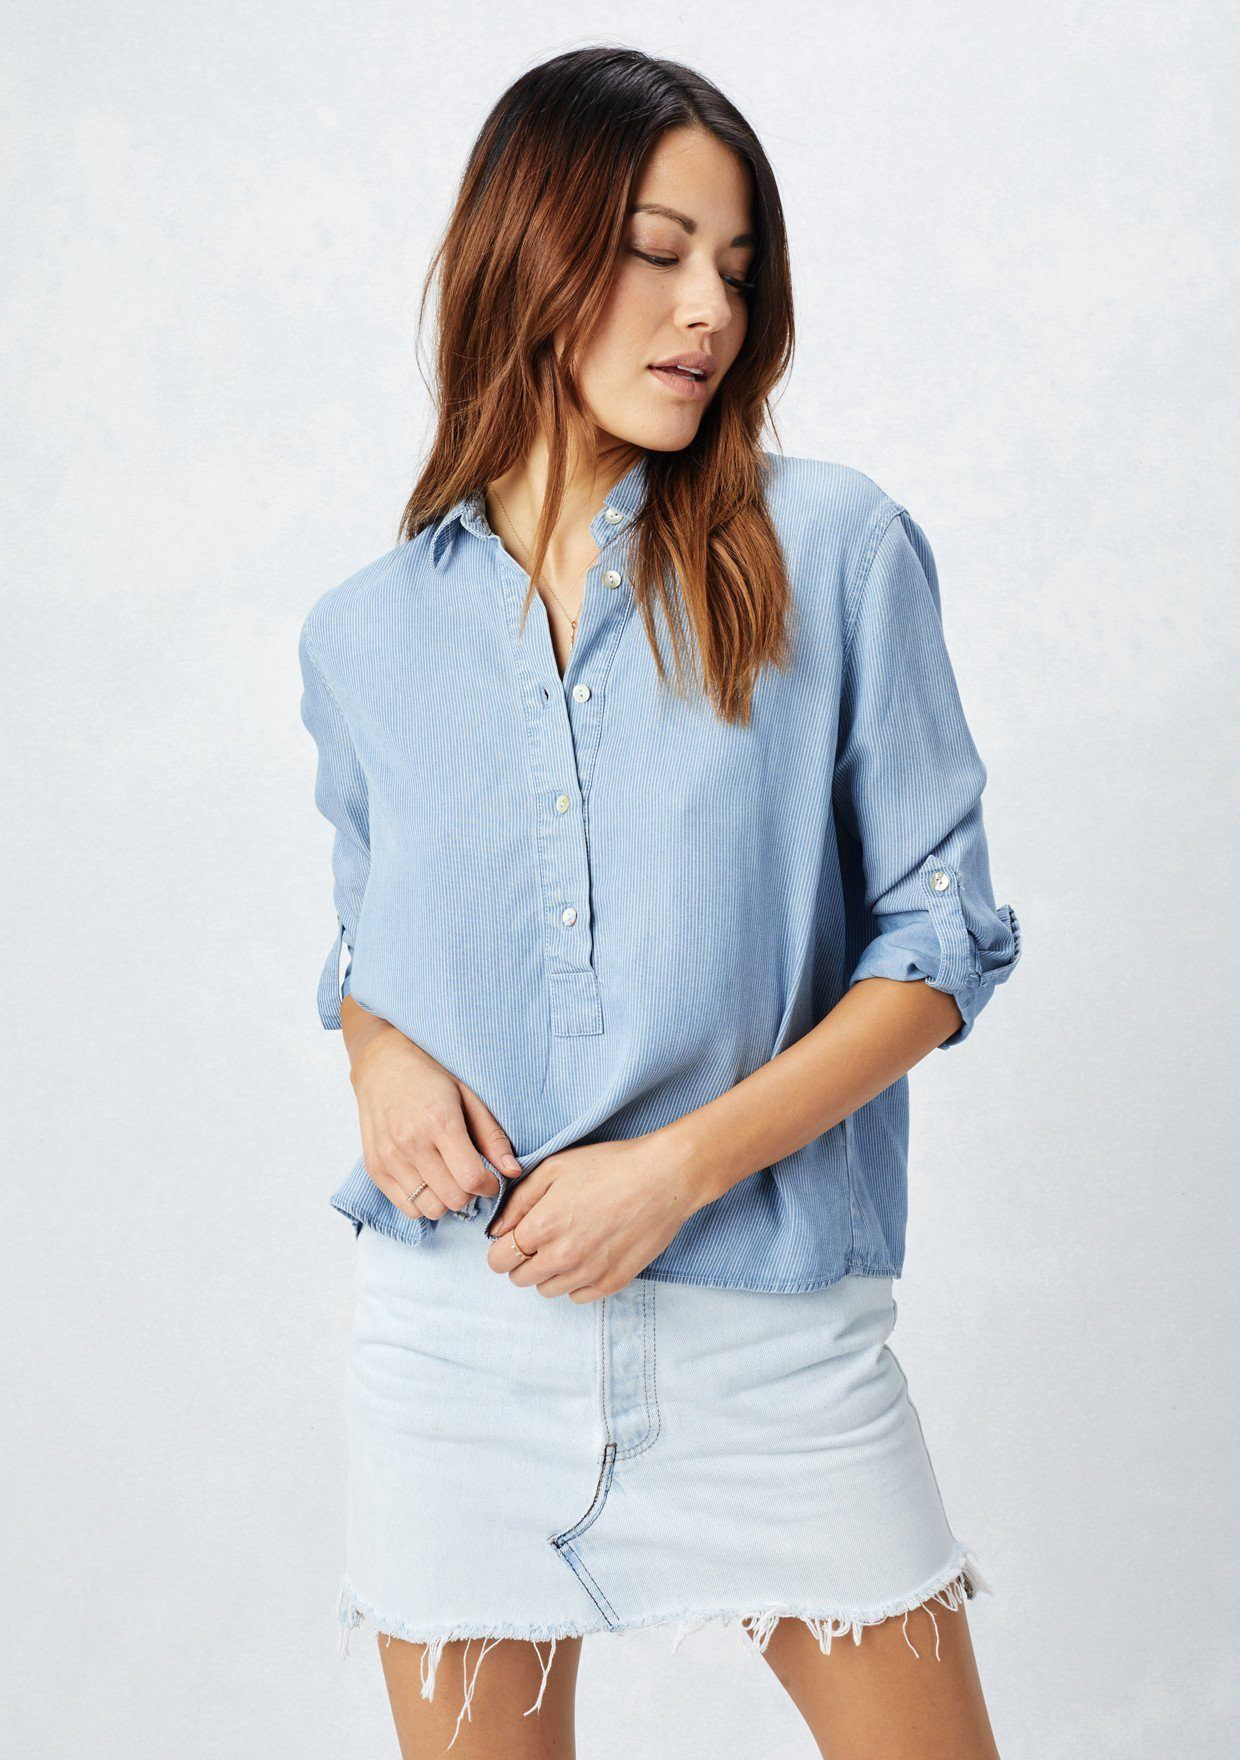 1030e9f8e0d0 Lovestitch-Cropped-Striped-Blue-Button-Detail-Collared-Shirt -3.jpg?v=1546972874